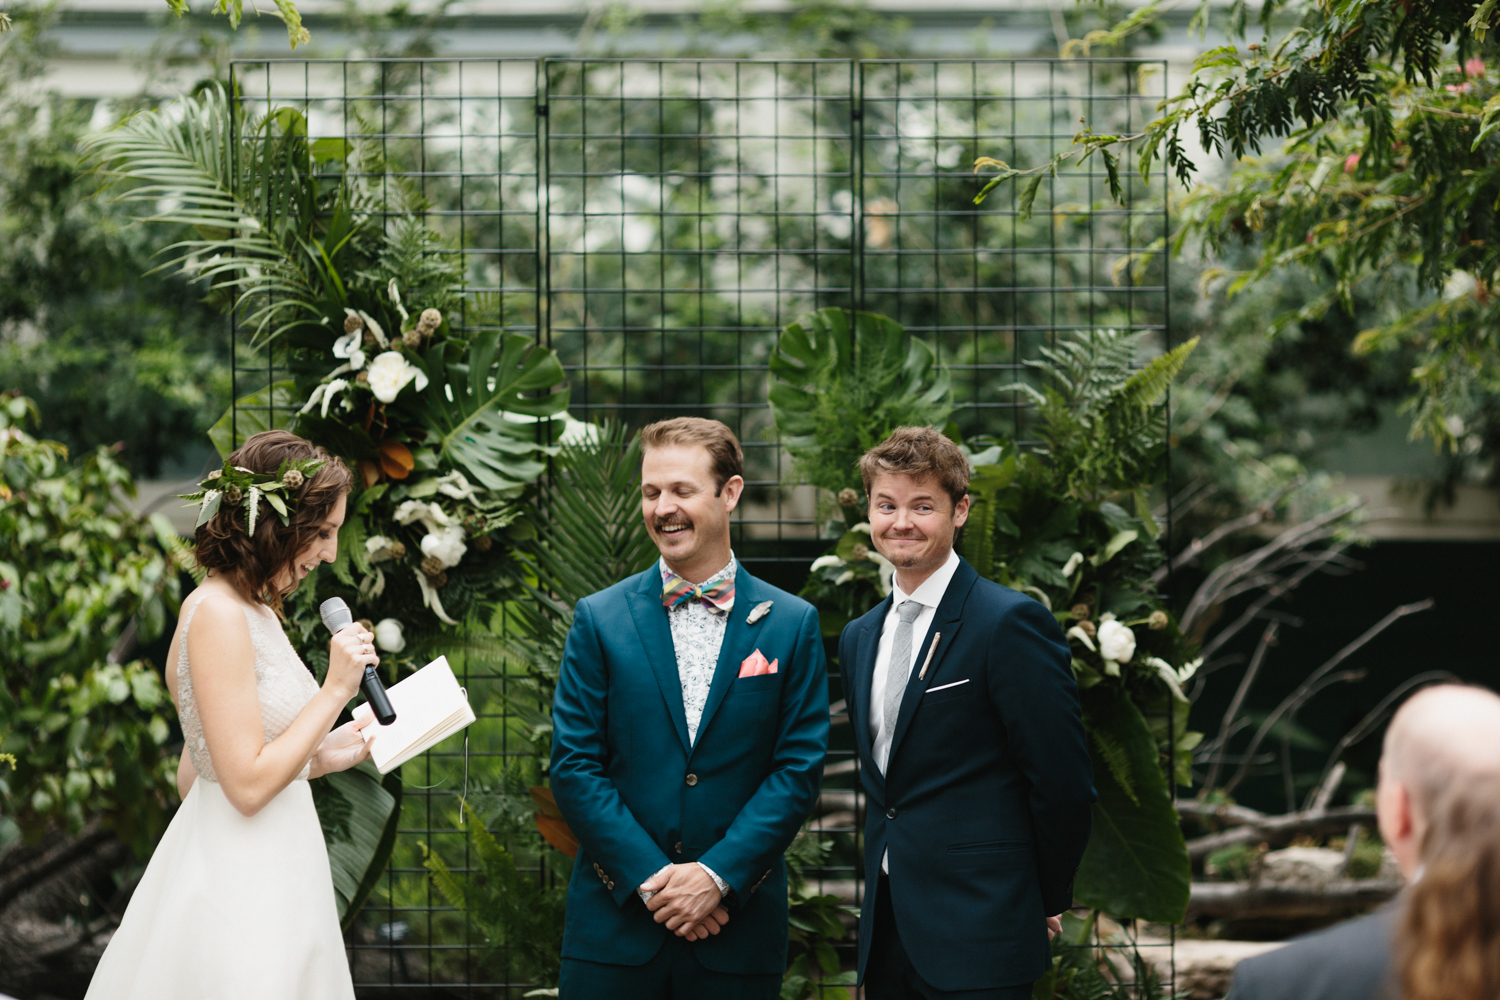 Chicago Garfield Park Conservatory Wedding by Northern Michigan Photographer Mae Stier-062.jpg